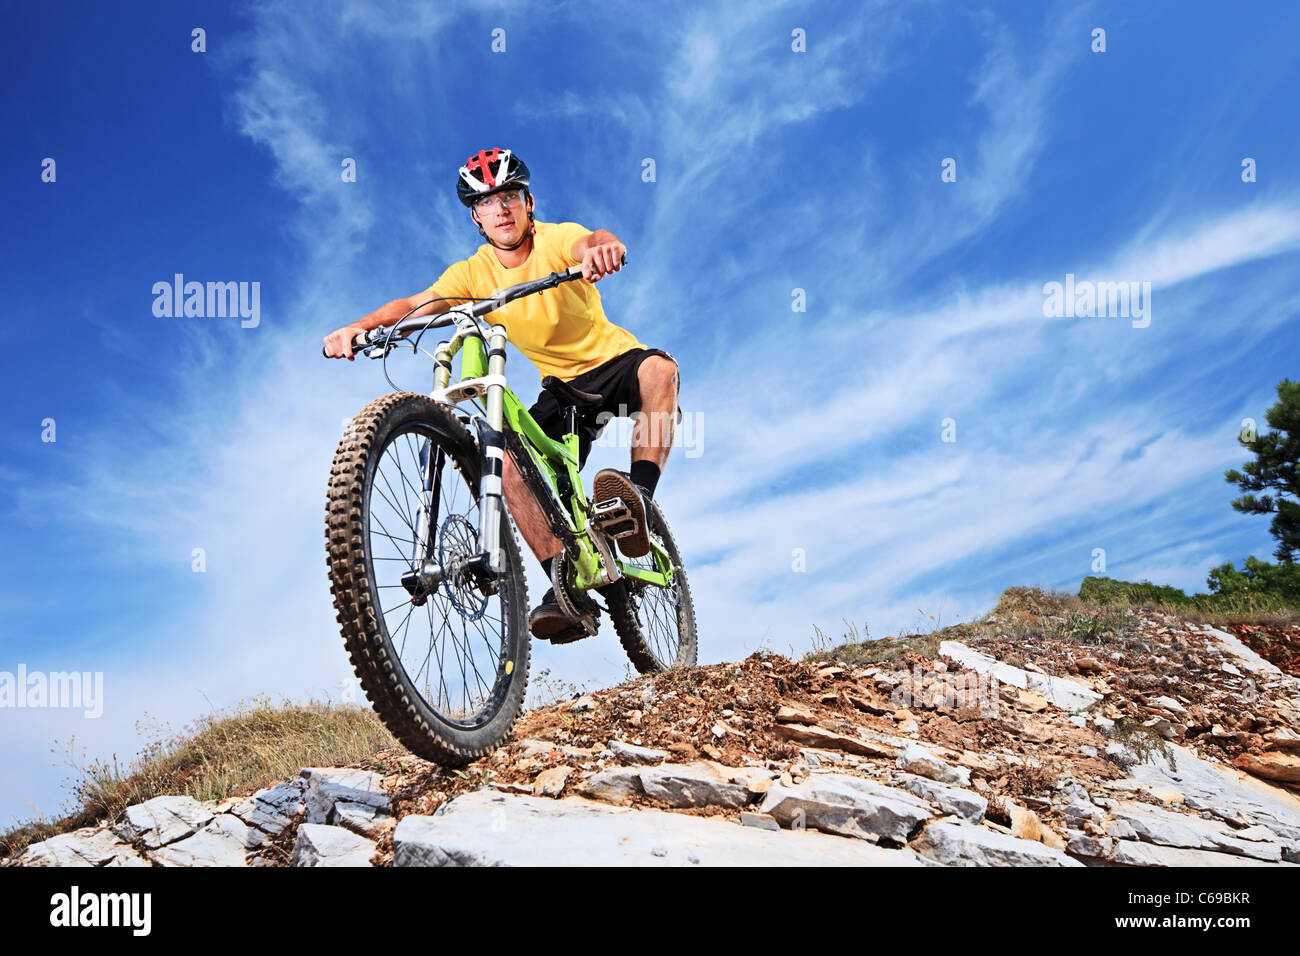 A young male riding a mountain bike - Stock Image